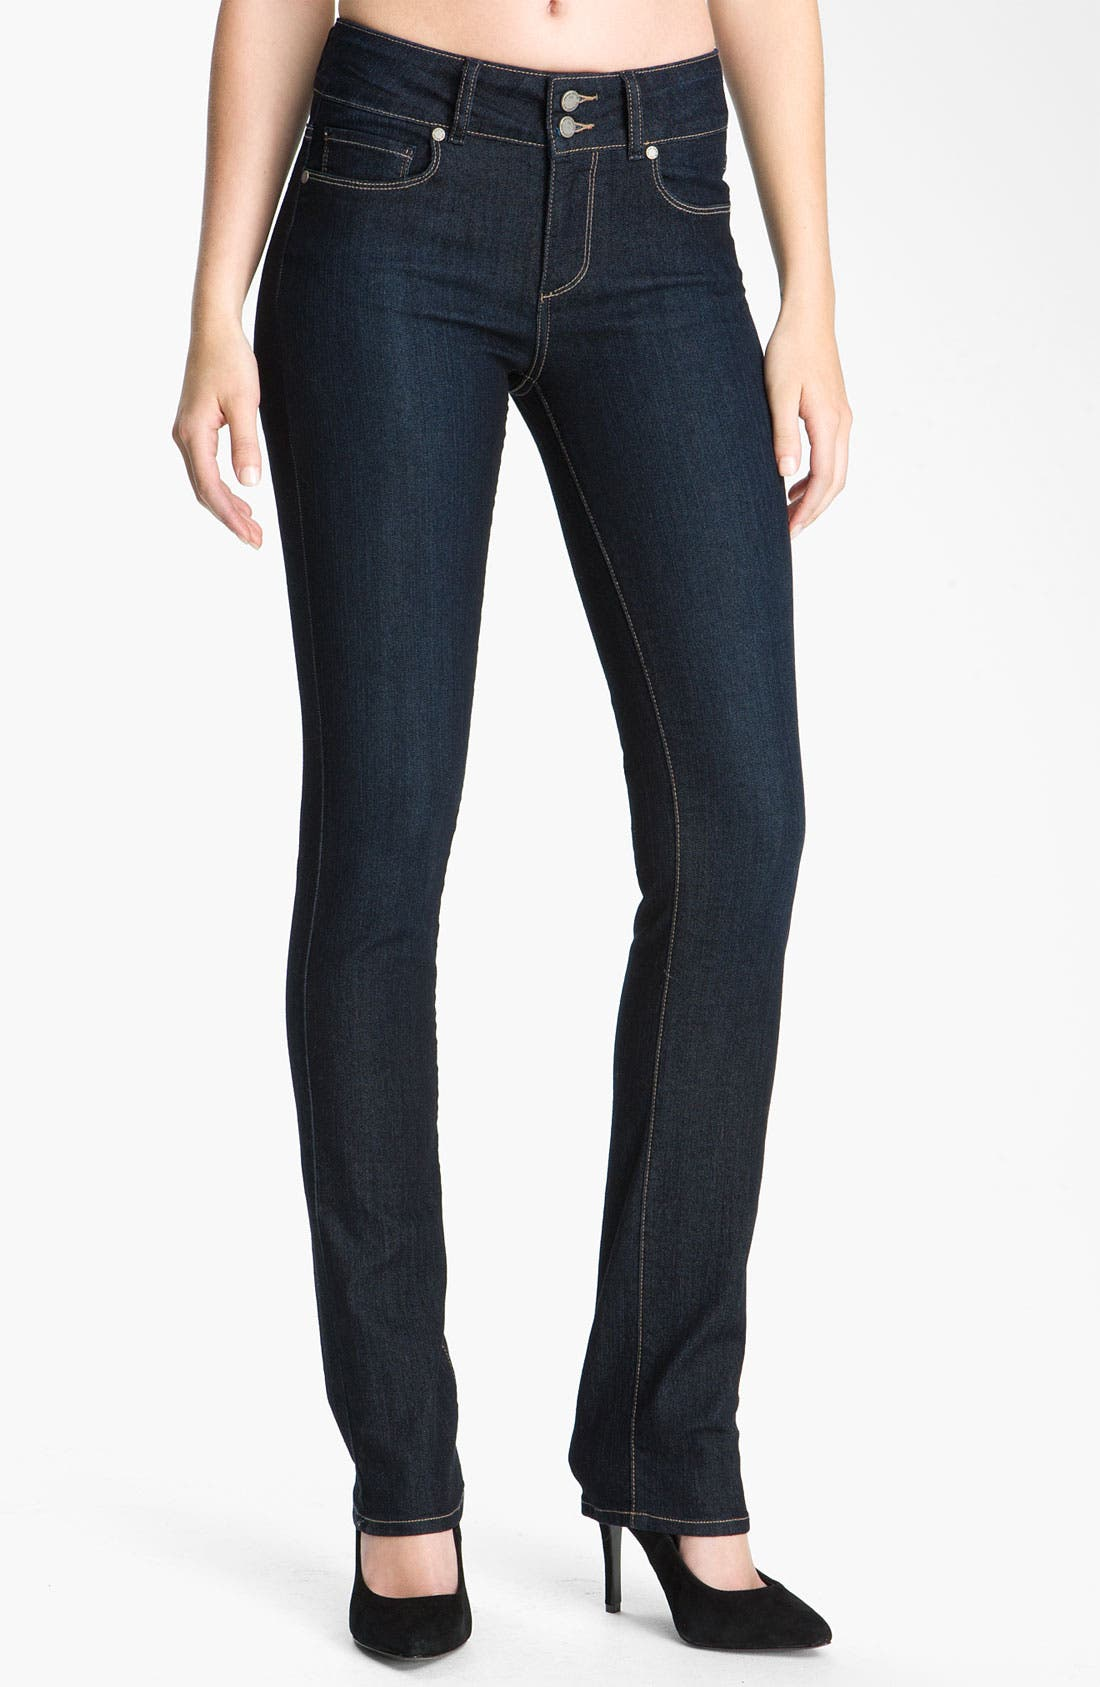 Alternate Image 1 Selected - PAIGE 'Hidden Hills' Straight Leg Stretch Jeans (Fountain)